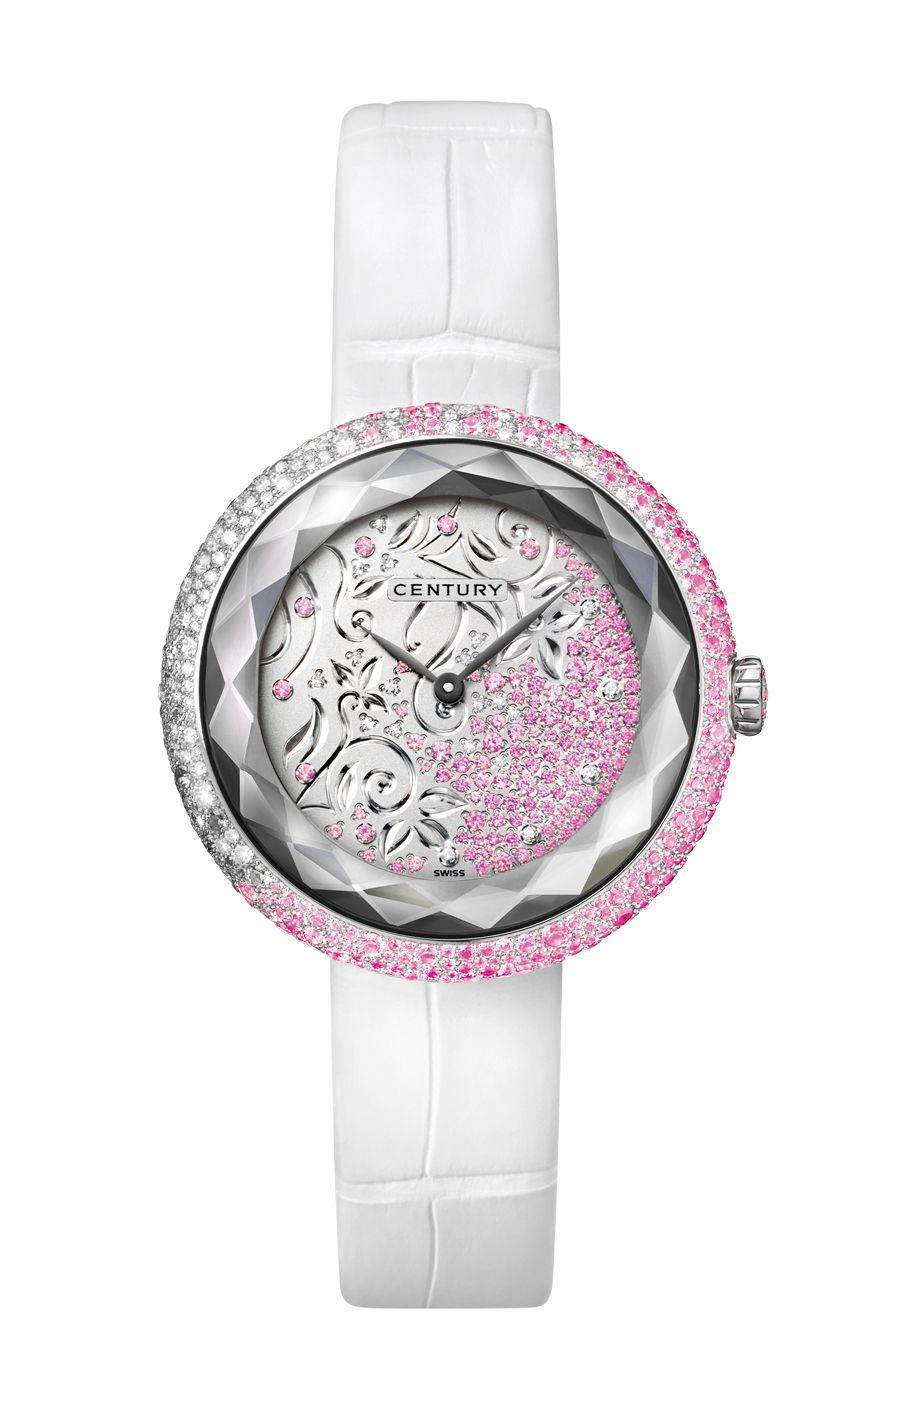 Collections LADIES - CENTURY Swiss Sapphire Watches